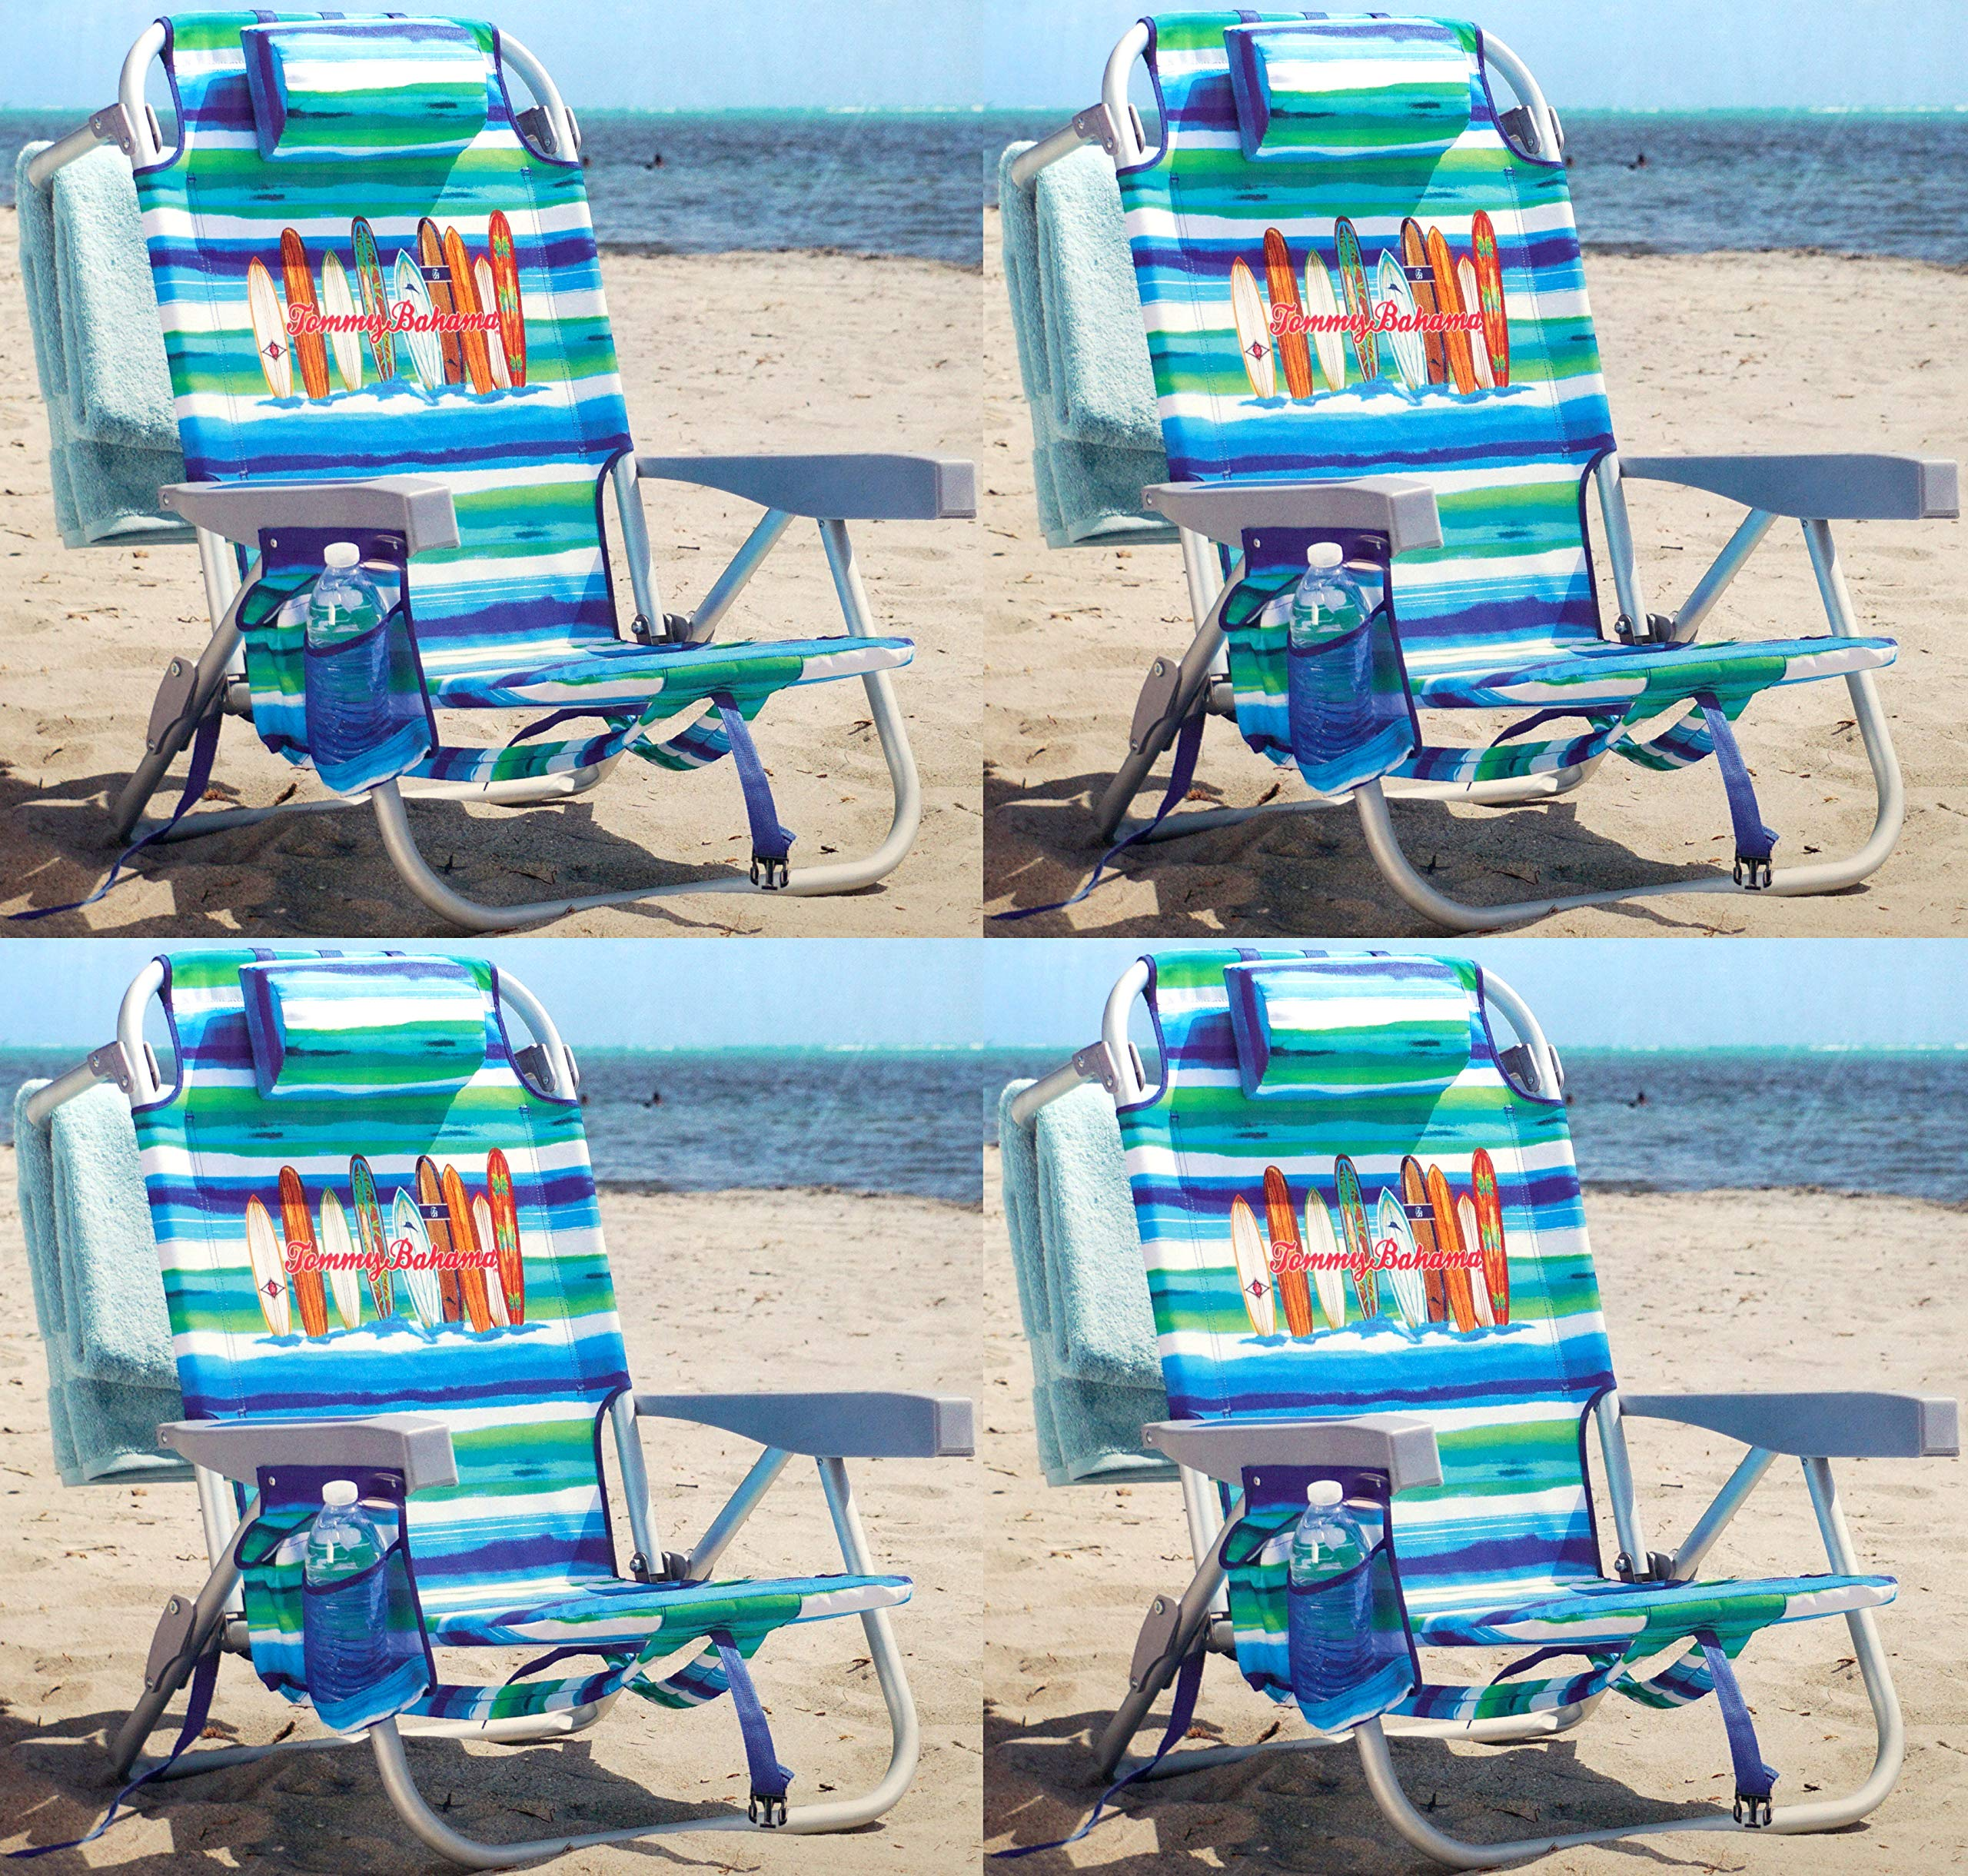 Tommy Bahama Backpack Chair - Insulated Cooler Pouch - 5 Positions (4 Ocean Stripes)